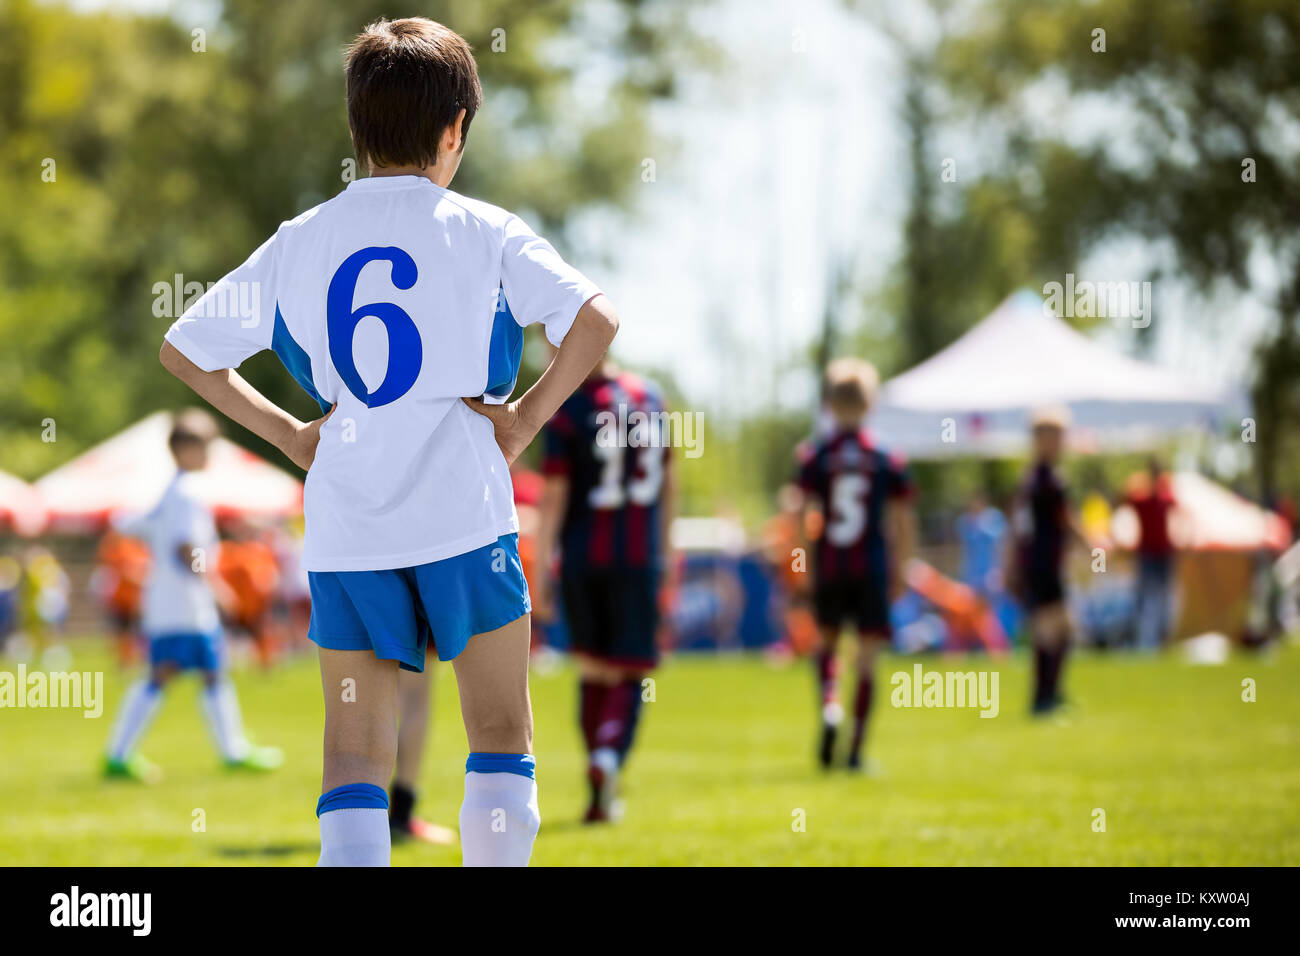 Kid Soccer Player. Young Professional Football Player. Young Boys Kicking Soccer Match - Stock Image